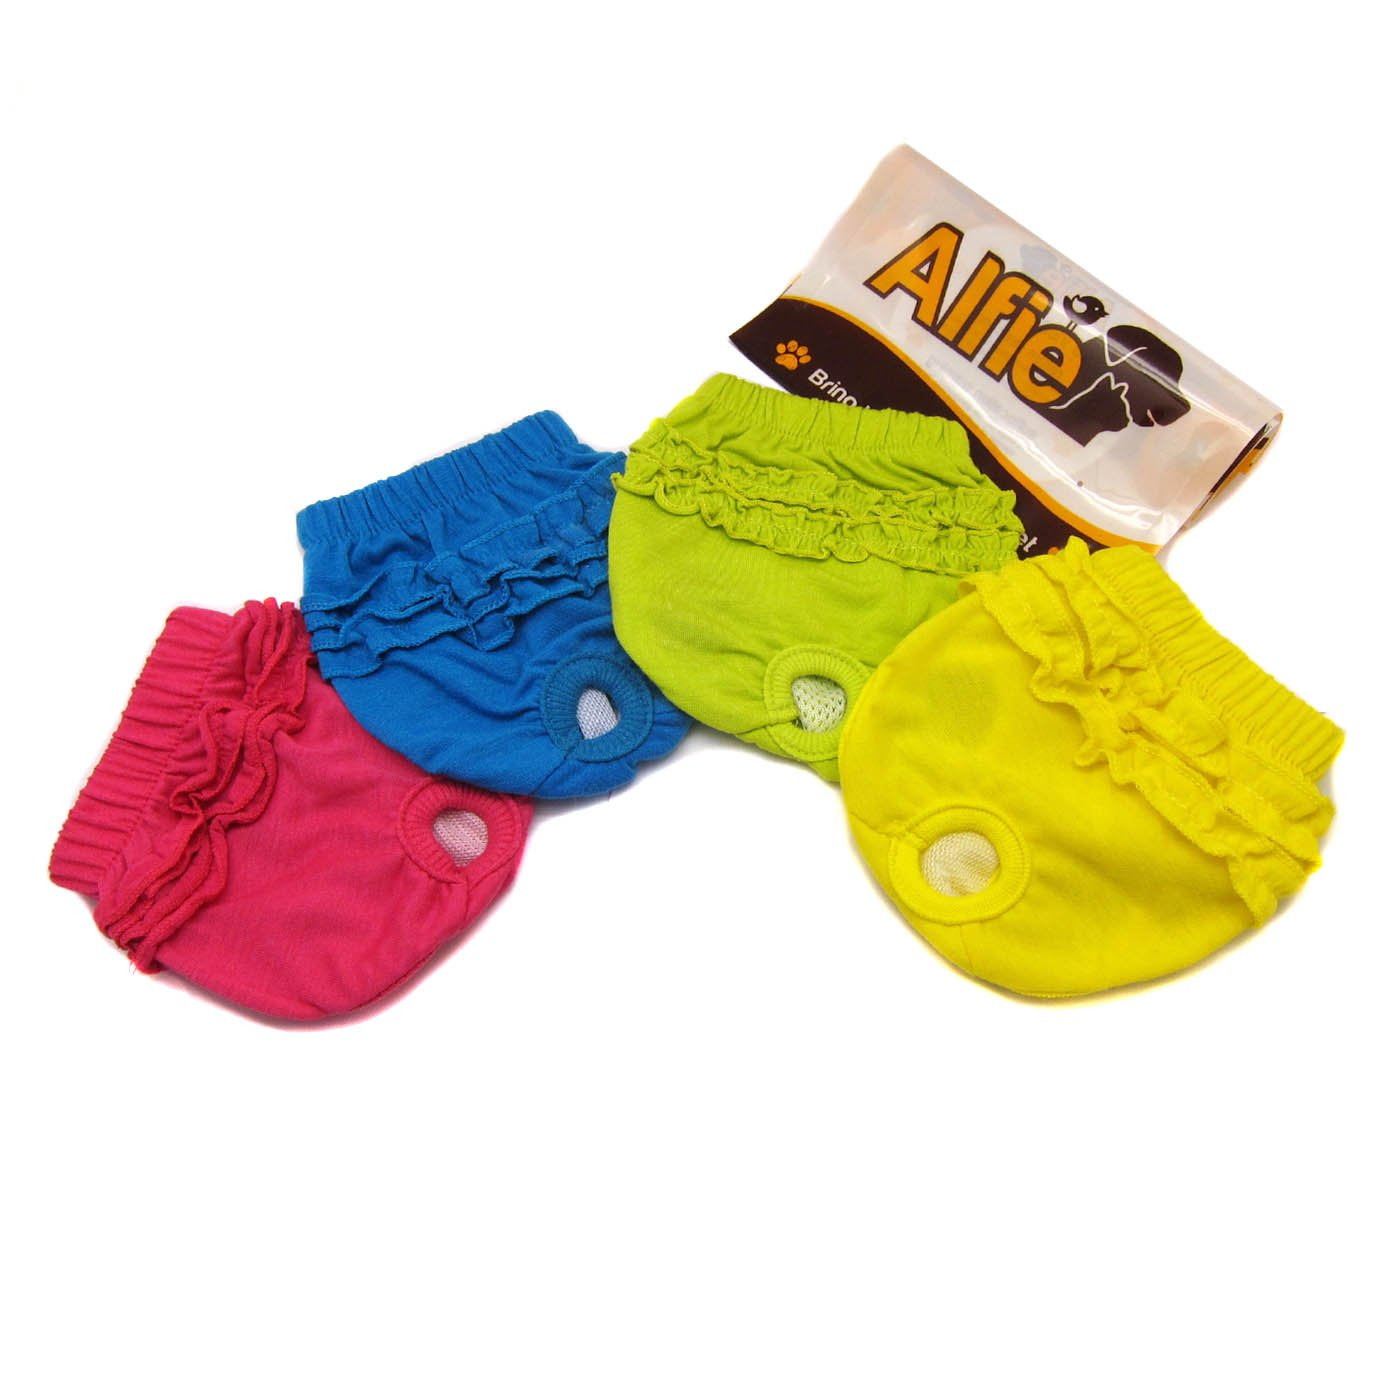 4-piece Set without Microfiber Washcloth Small 4-piece Set without Microfiber Washcloth Small Alfie Pet BAMI Diaper Dog Sanitary Pantie 4-Piece Set Size  S (for Girl Dogs)